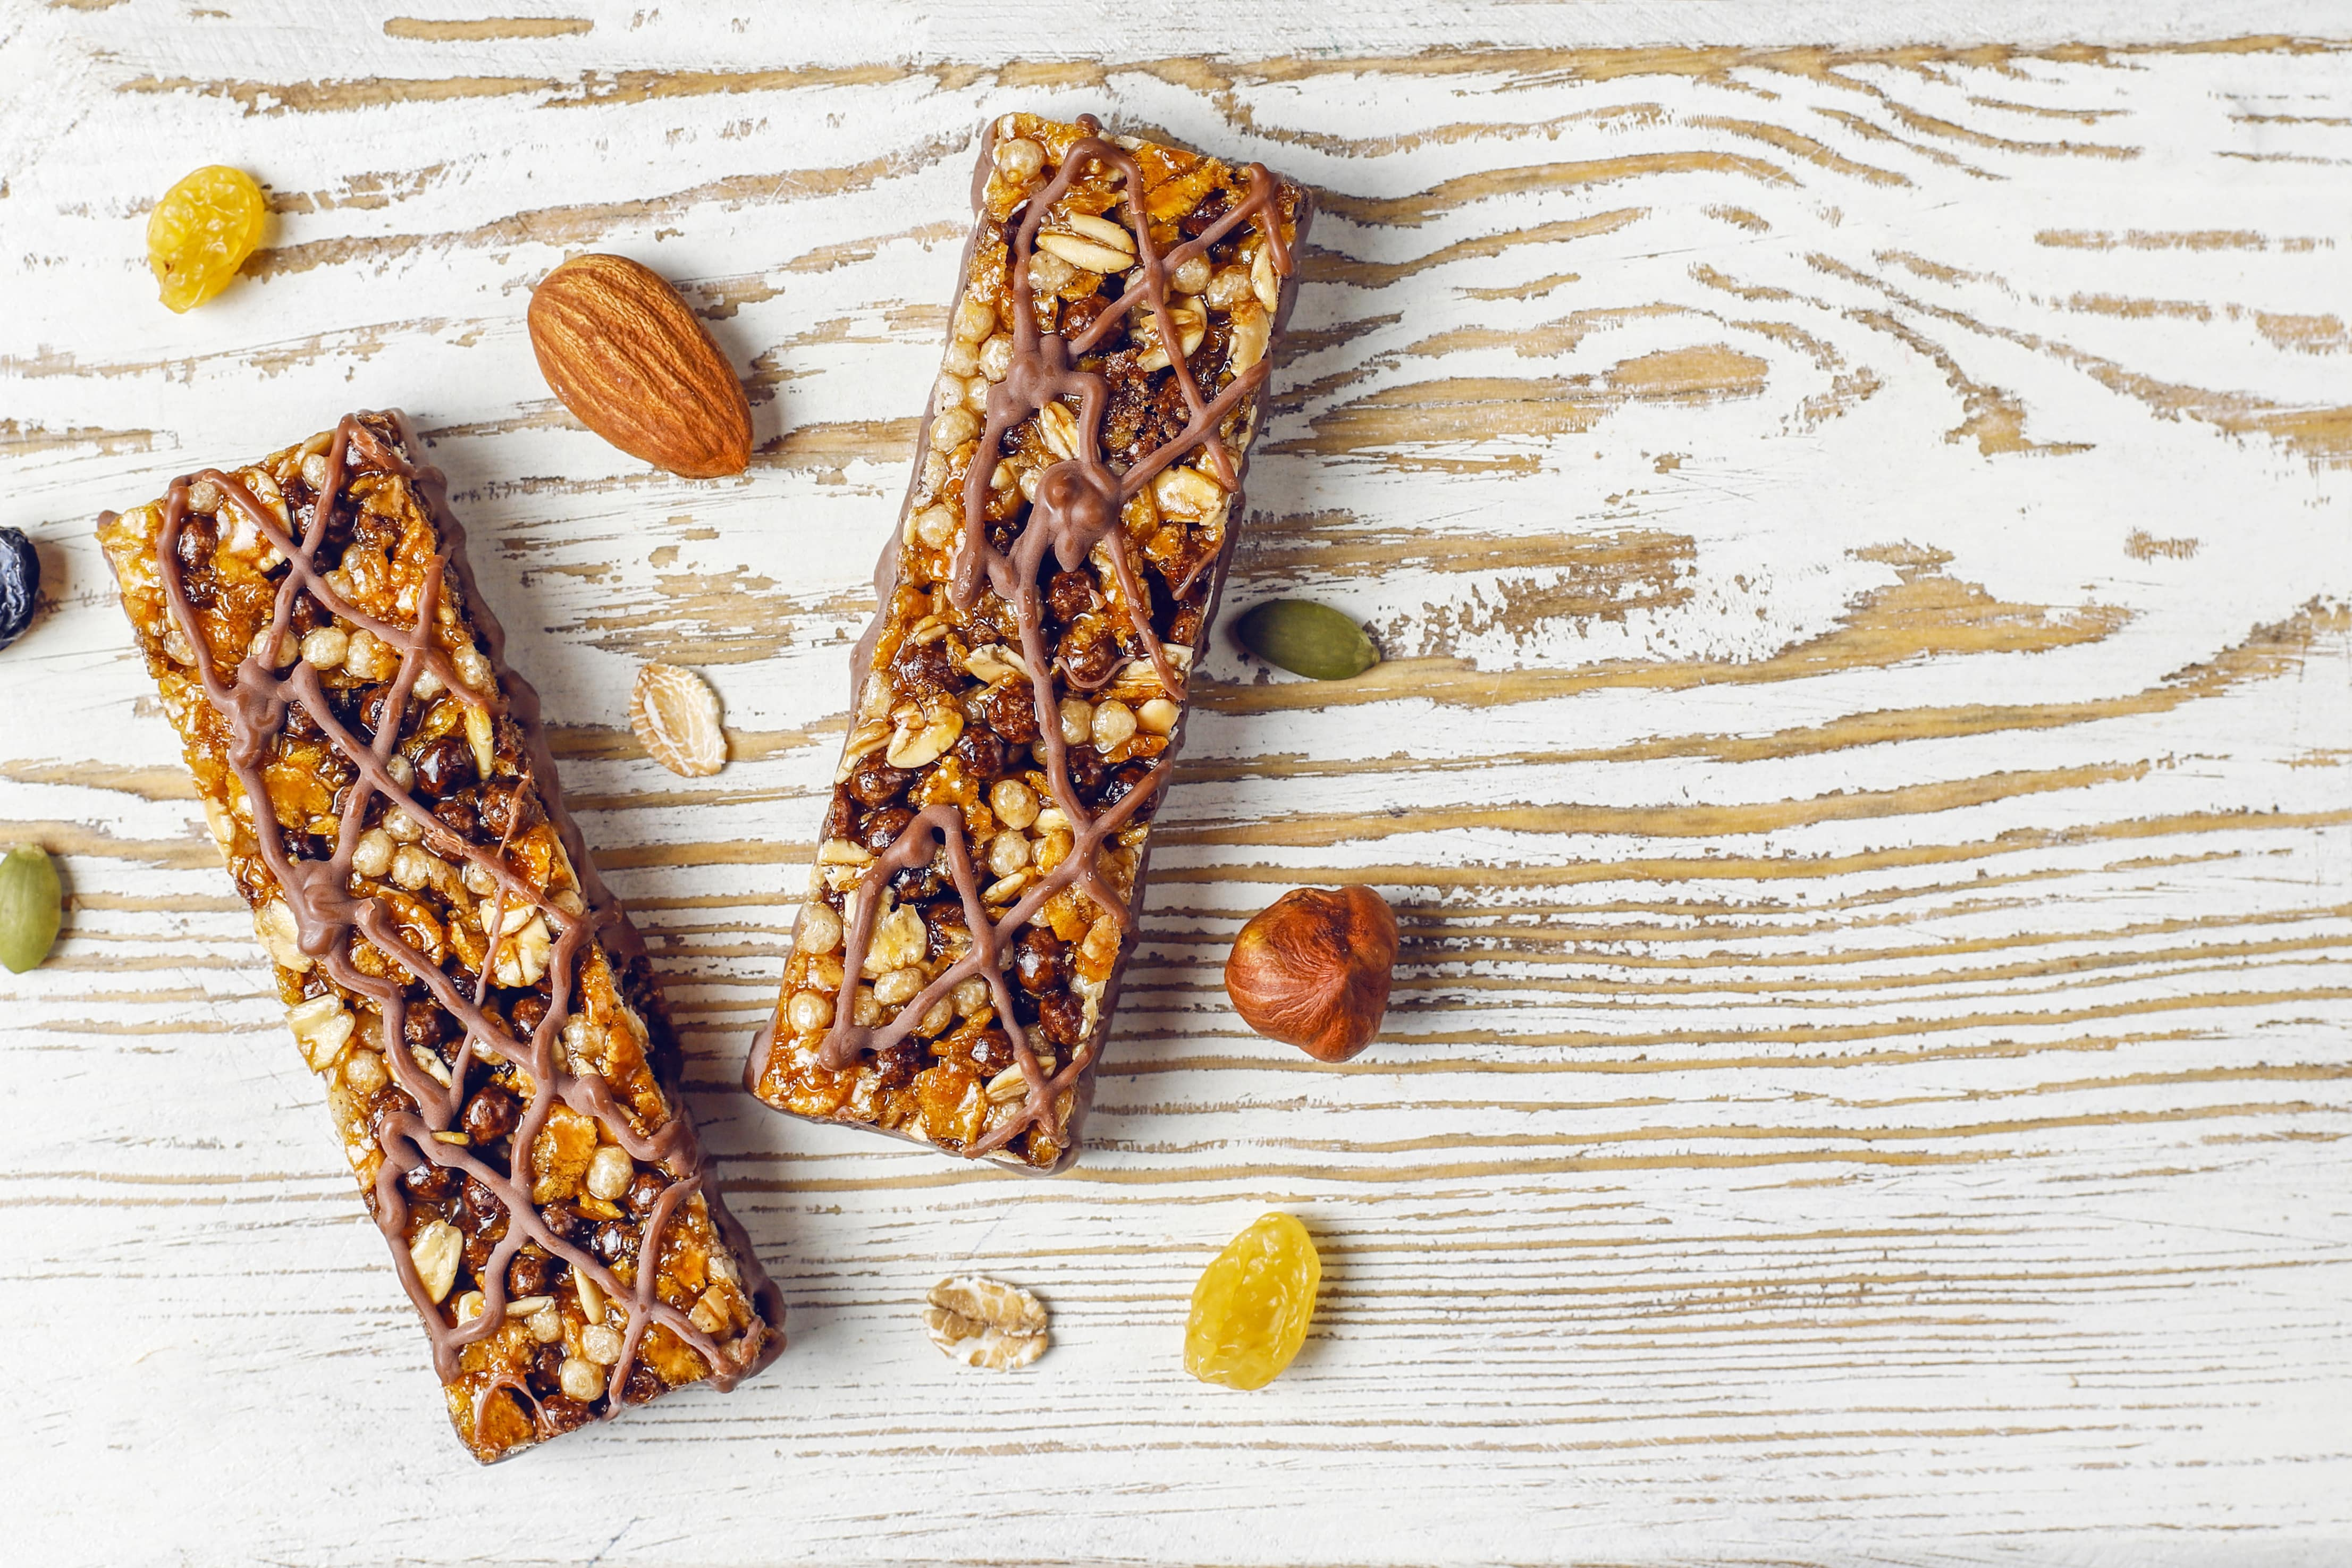 5 D2C Healthy Snacking Start-ups Solving the 'Snack Crunch' Problem